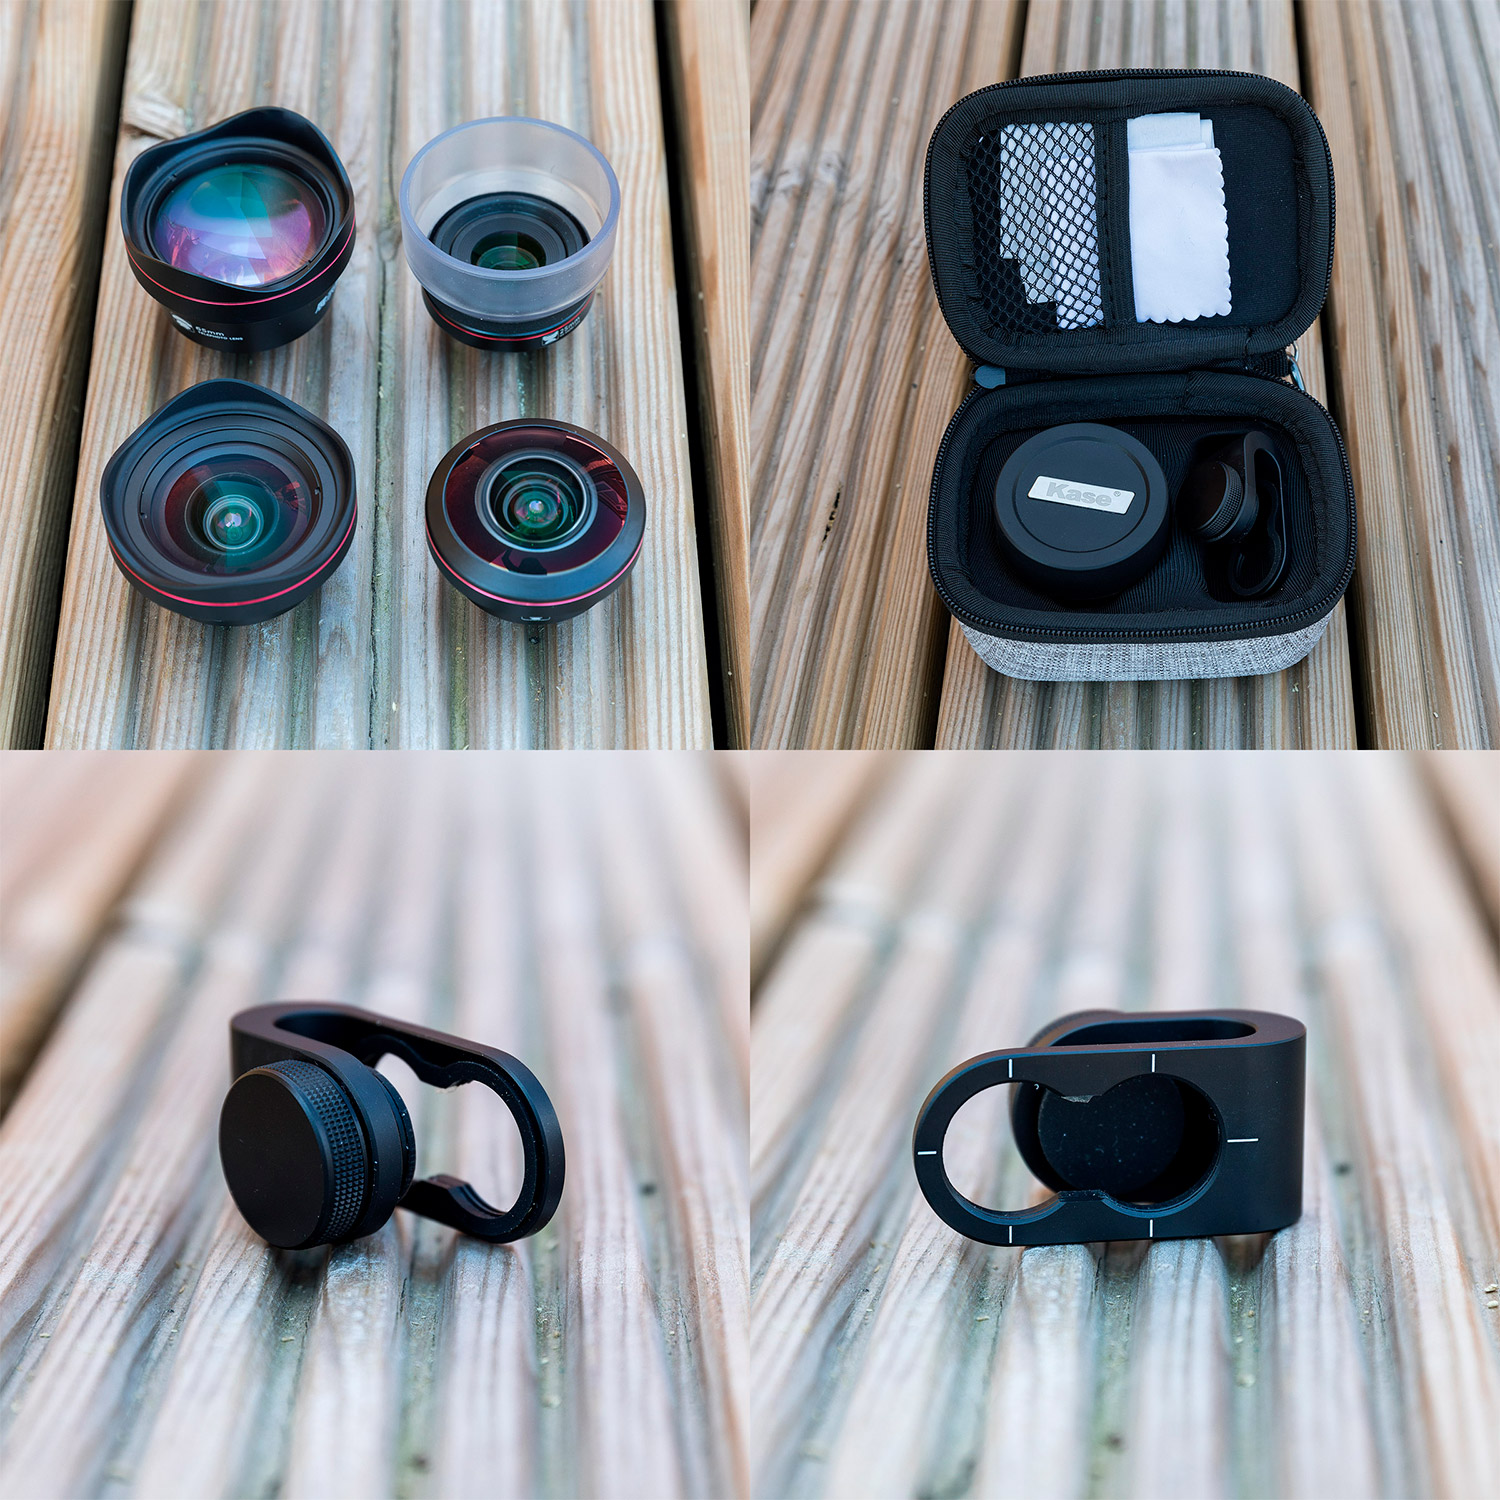 kase-mobile-lenses.jpg